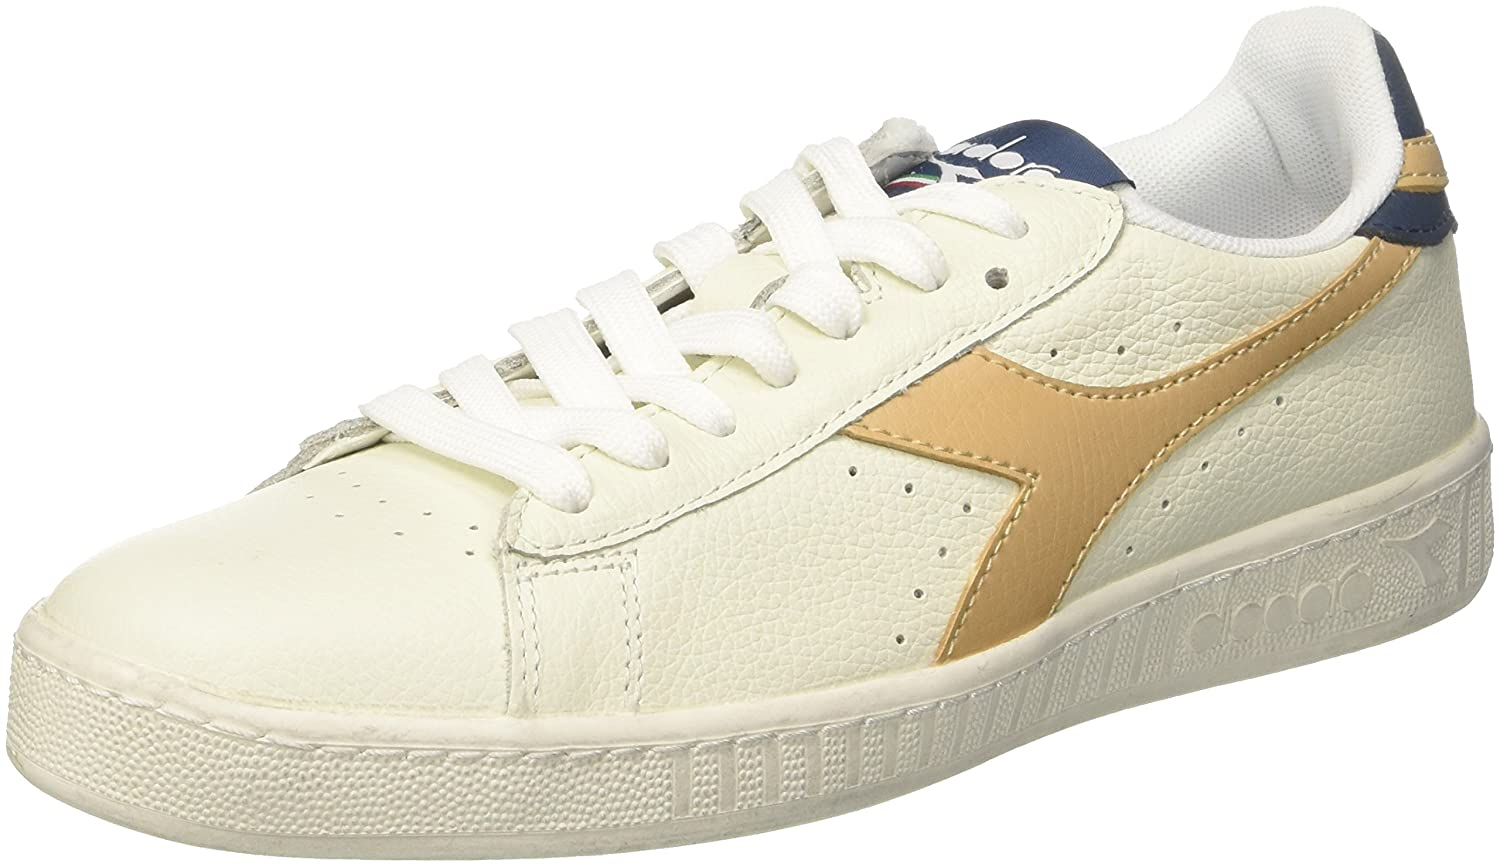 Men/Women Diadora - 160821C625 42.0 EUR|White-sand B077ZNWQ5L Diverse for new design Known for Diverse its good quality best seller 3b10e6